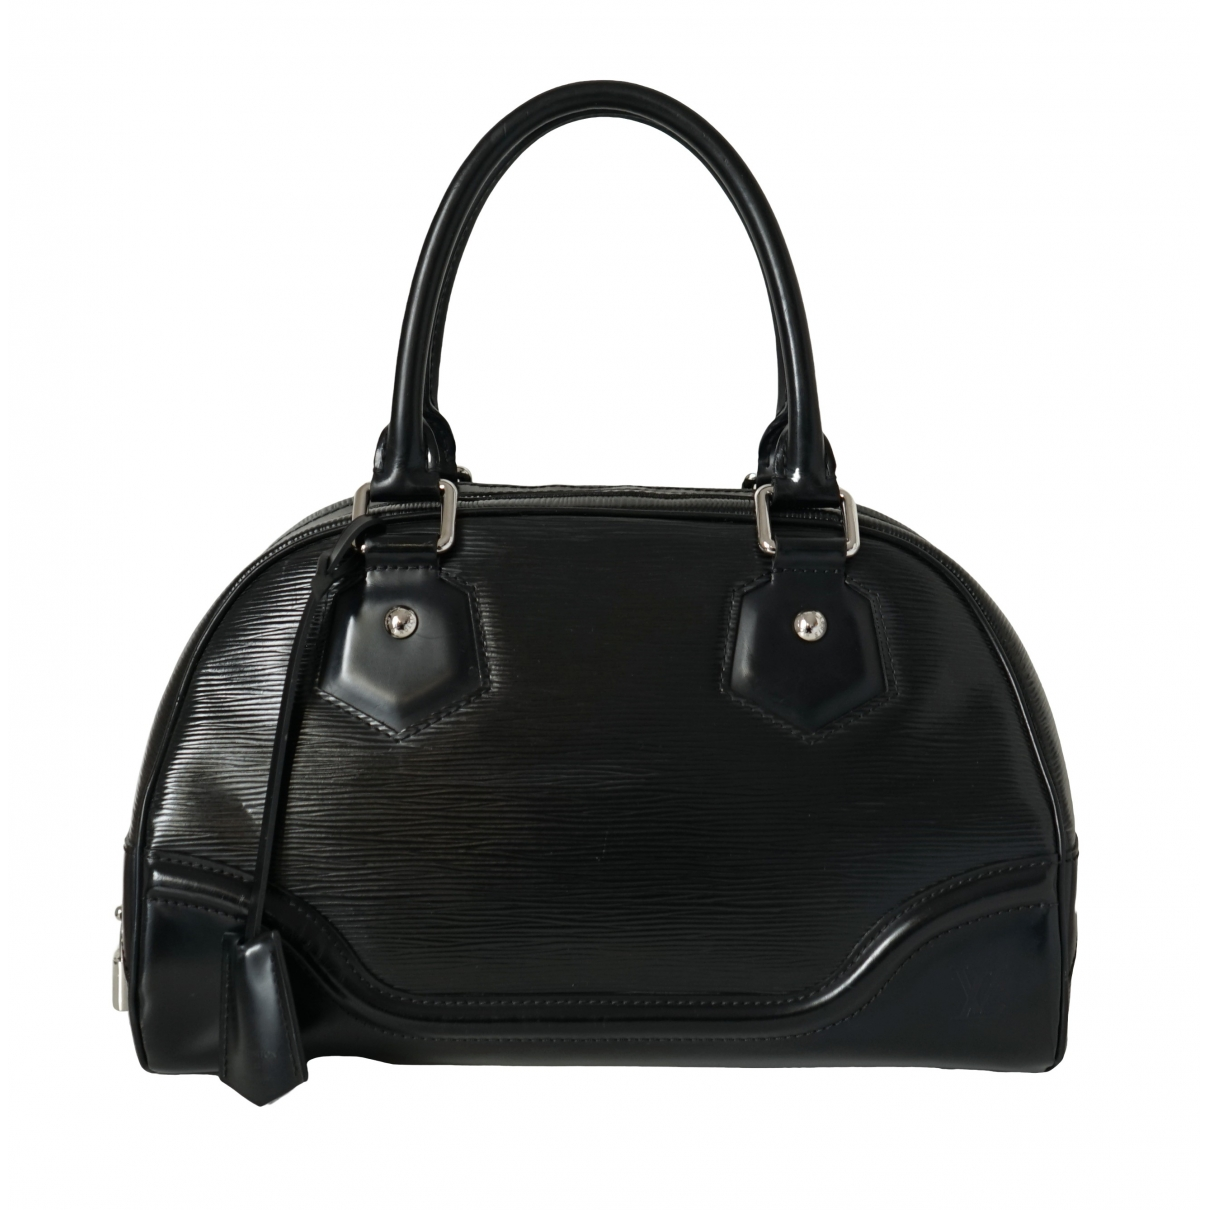 Louis Vuitton Montaigne Vintage  Black Leather handbag for Women \N